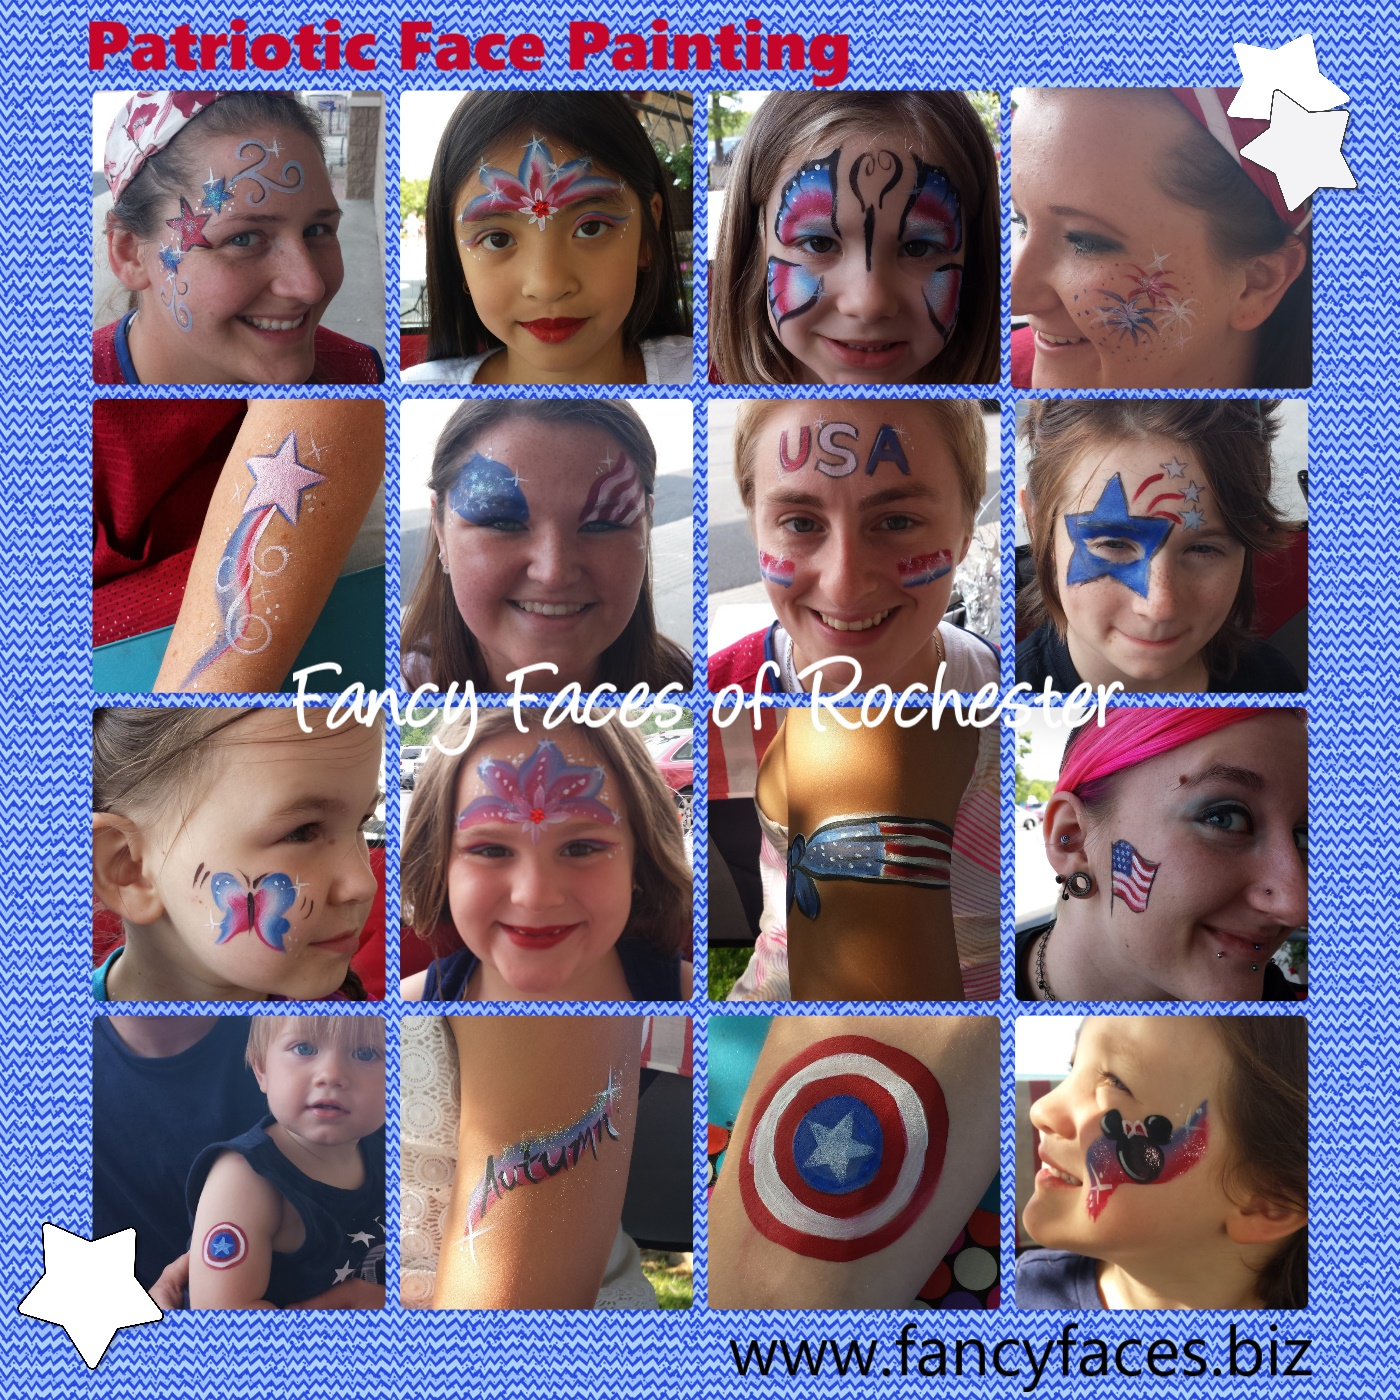 fancy faces of rochester